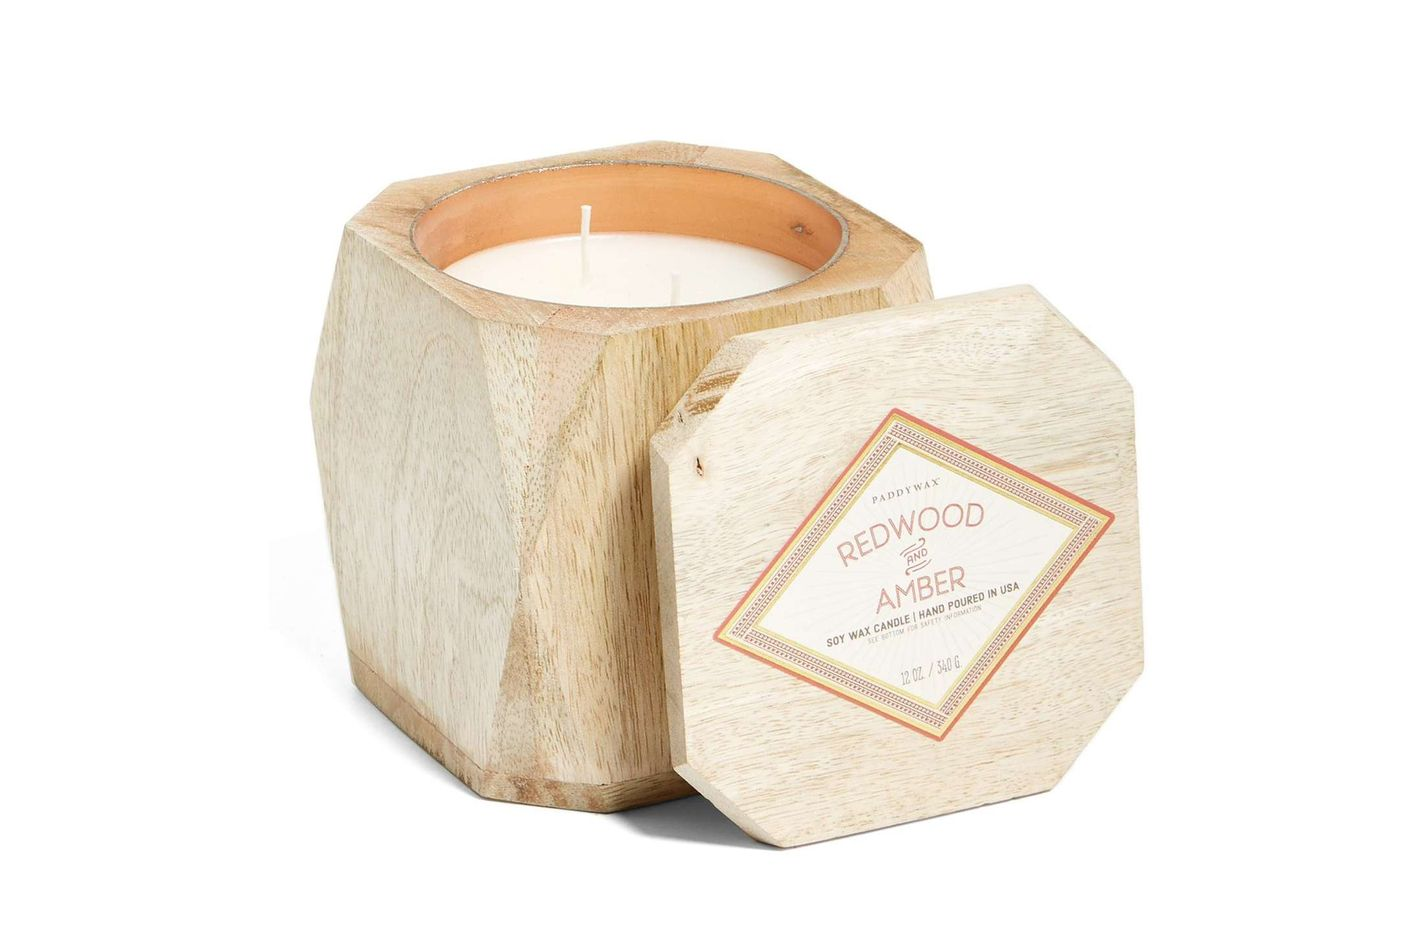 Paddywax Redwood & Amber Soy Wax Candle